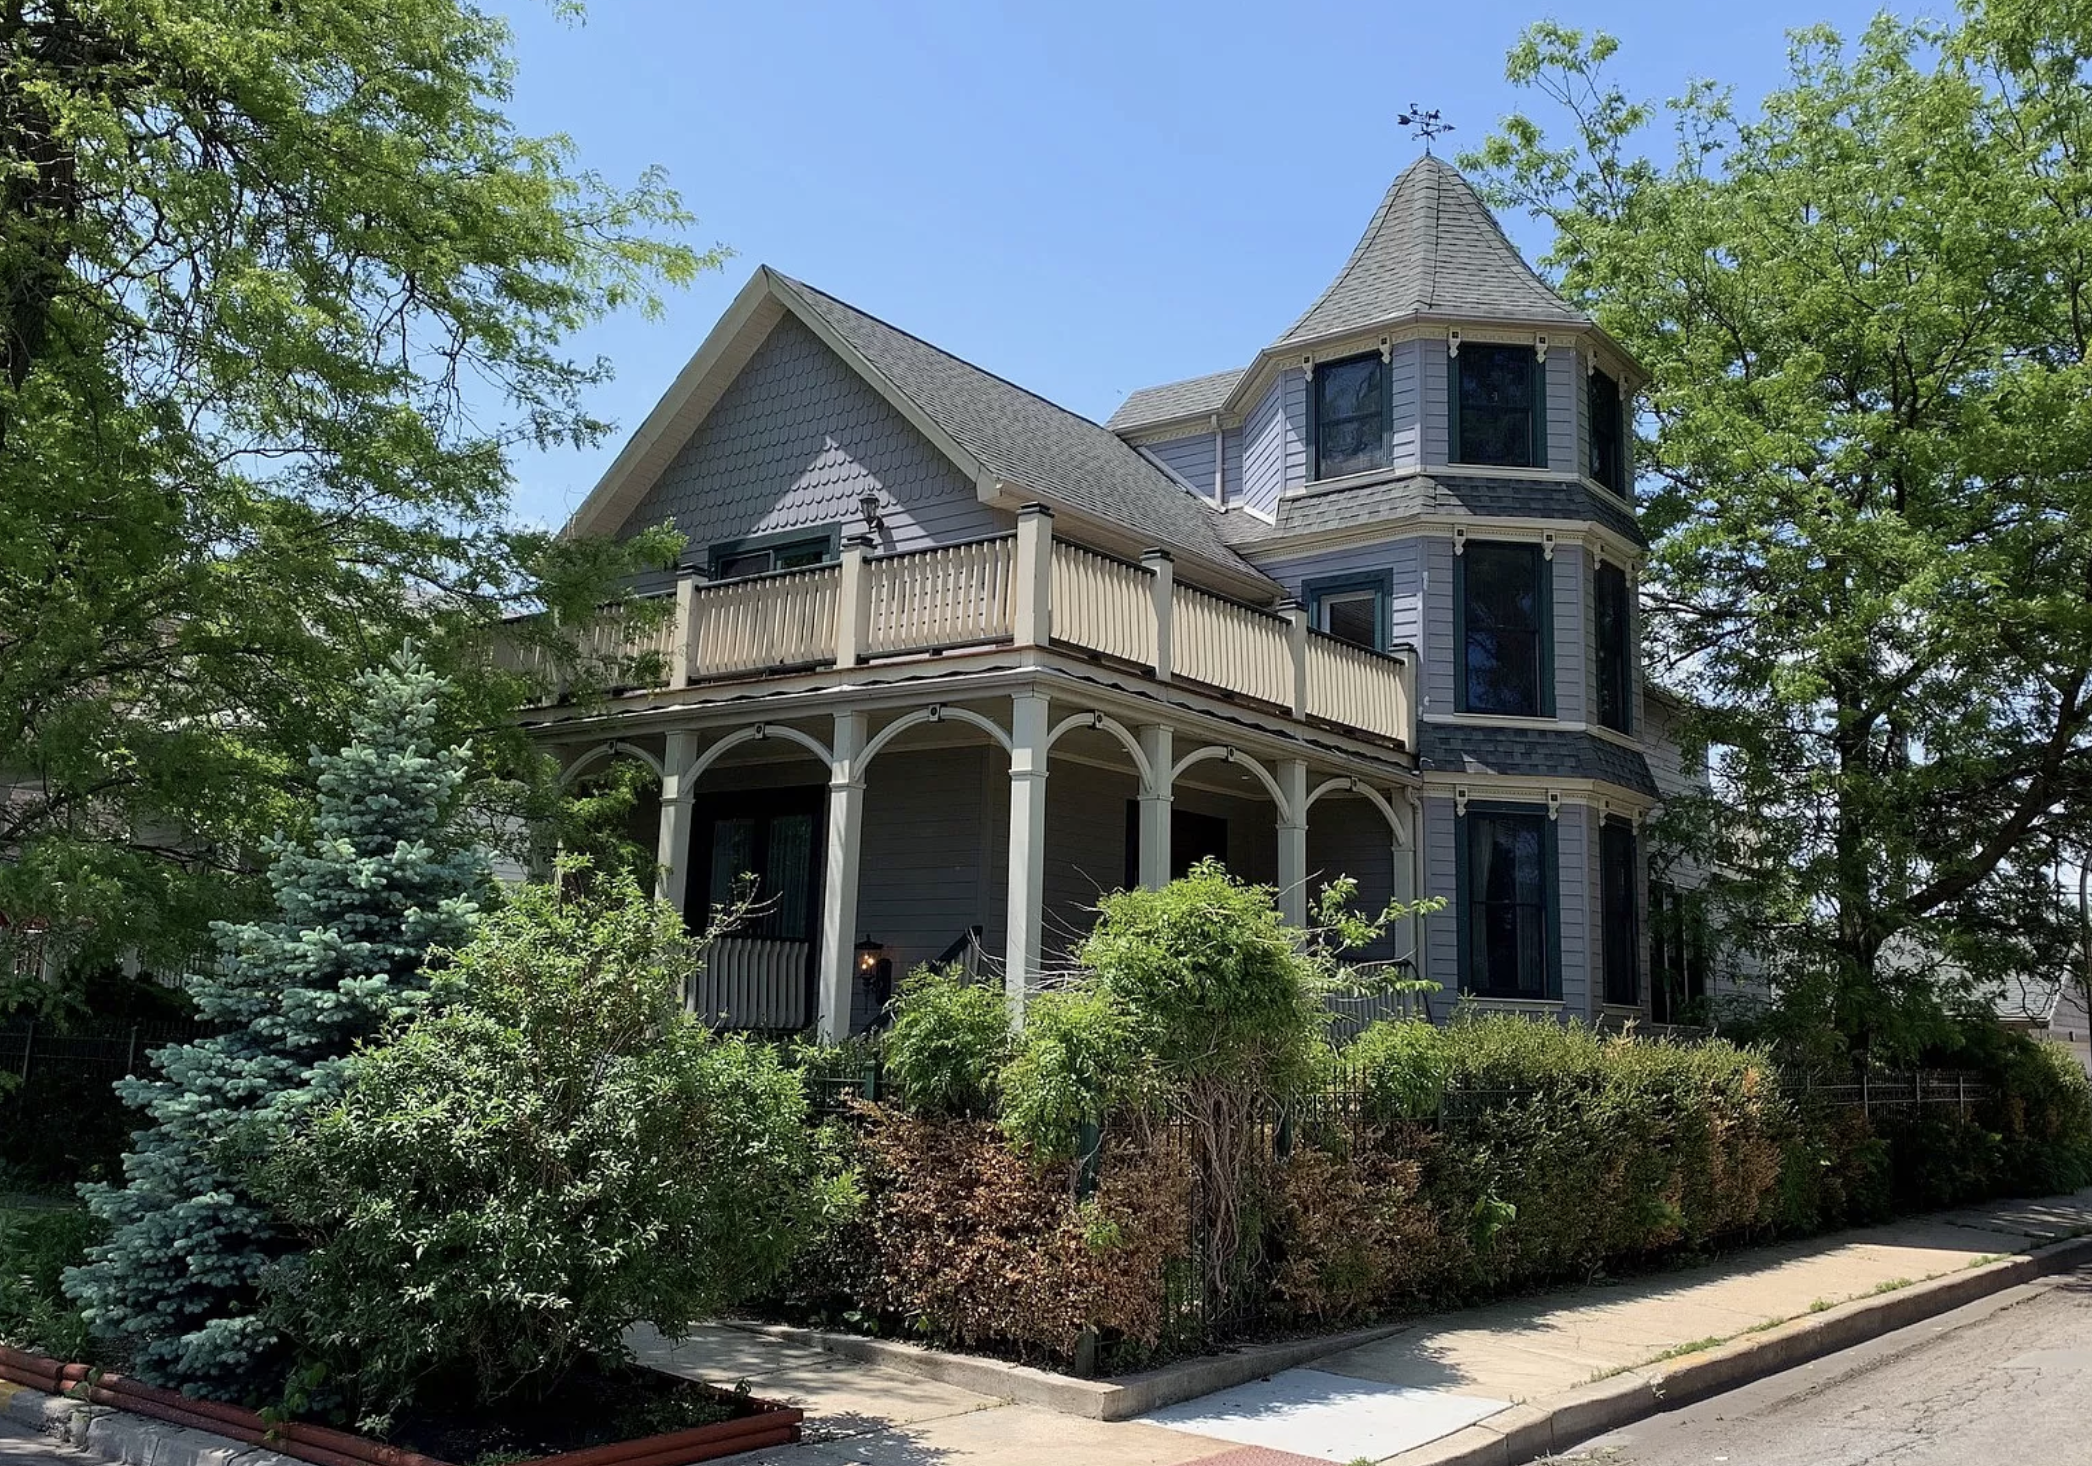 A home with Victorian era details like a front porch with white banisters, a turret, and purple siding. There is landscaping all around the front yard.